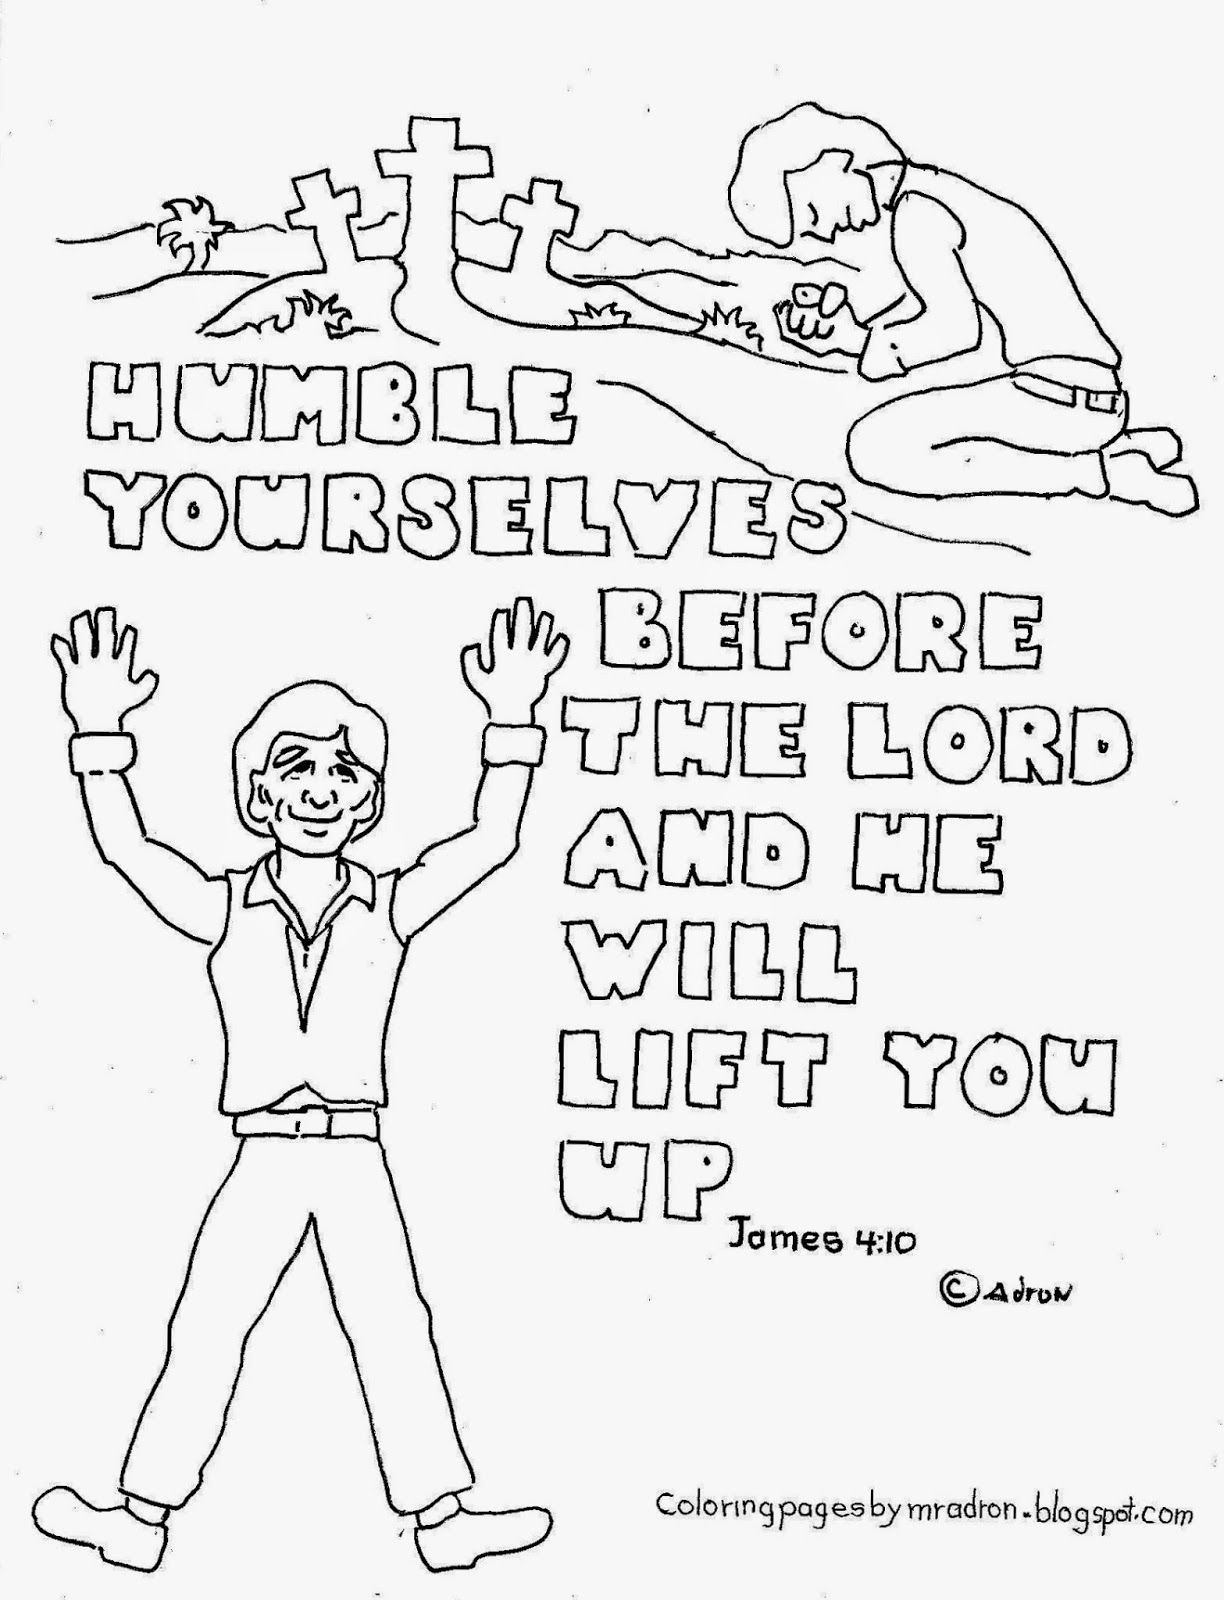 Humble yourselves james 410 coloring page